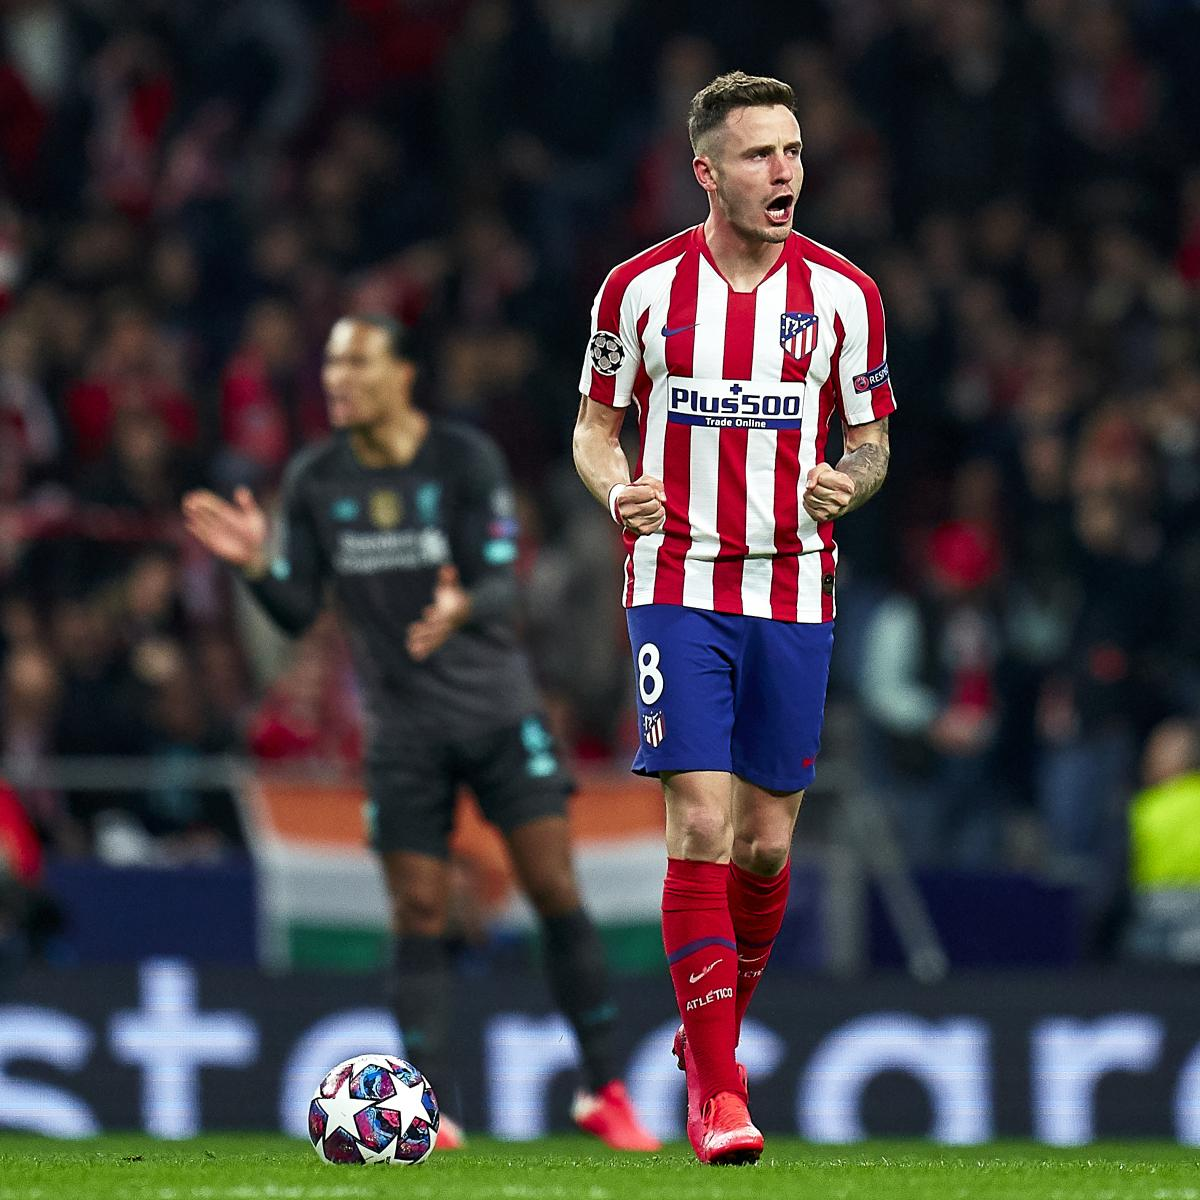 Saul Niguez Leads Atletico Madrid Past Liverpool 1-0 in UCL Round of 16 Leg 1